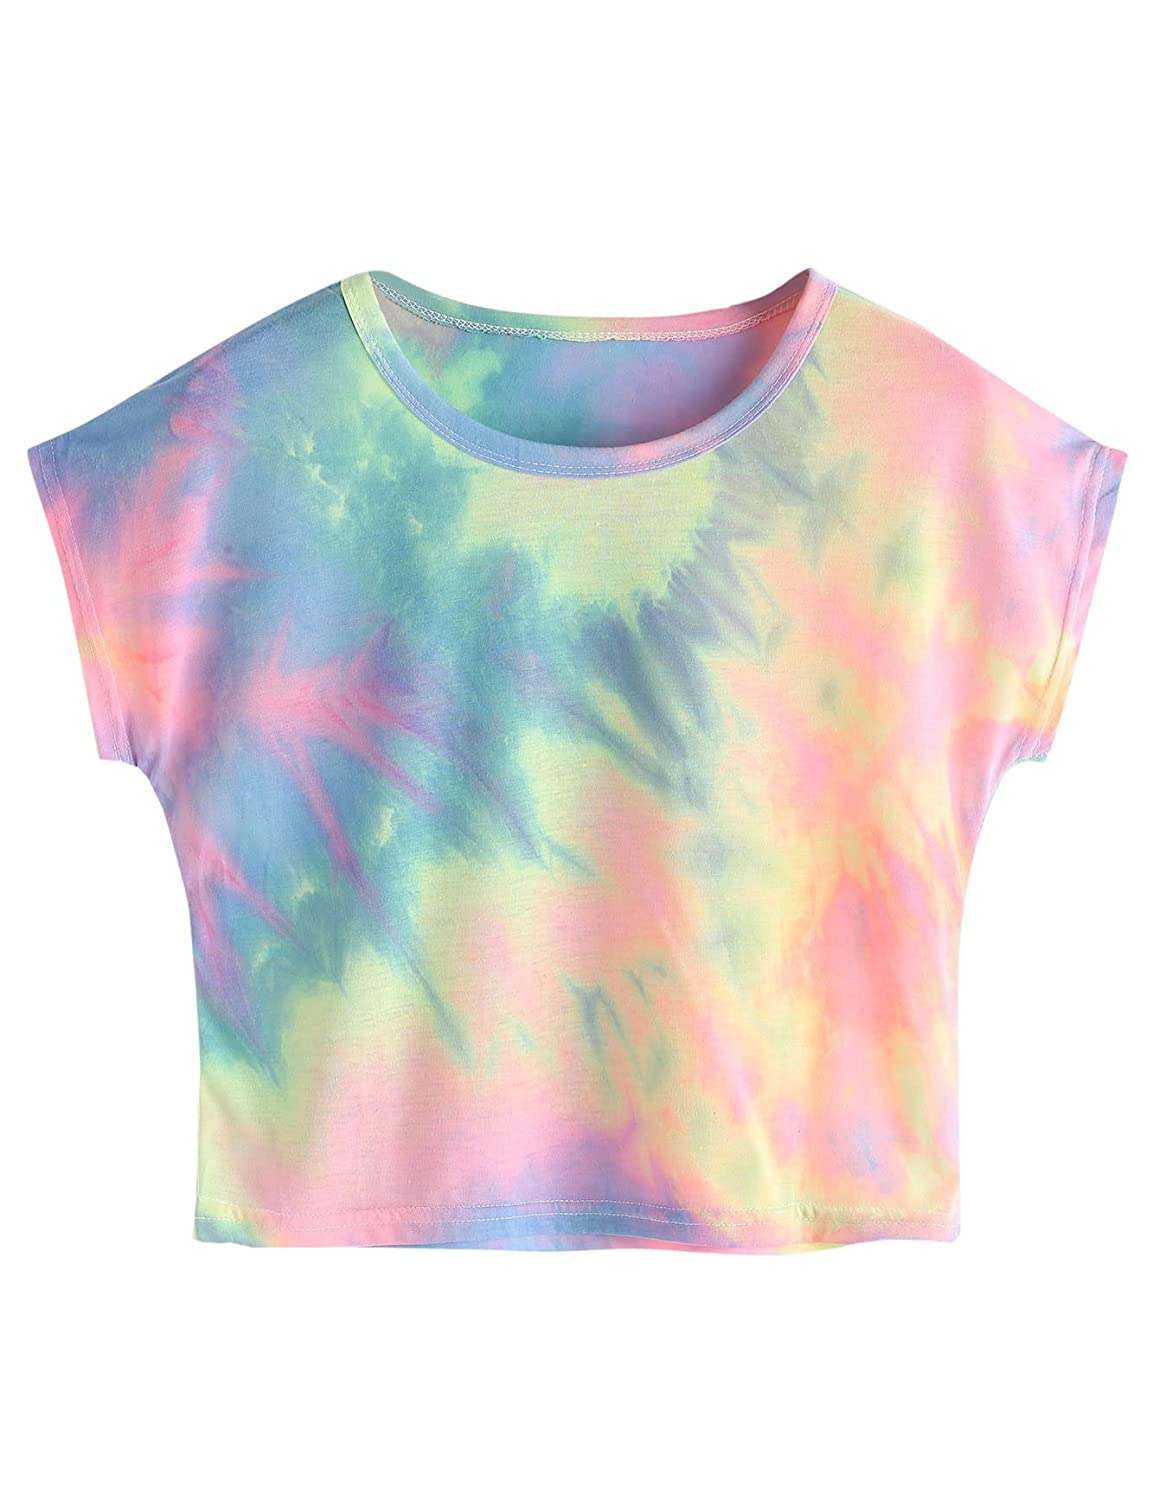 80s Costumes, Outfit Ideas- Girls and Guys SweatyRocks Womens Tie Dye Letter Print Crop Top T Shirt $13.99 AT vintagedancer.com